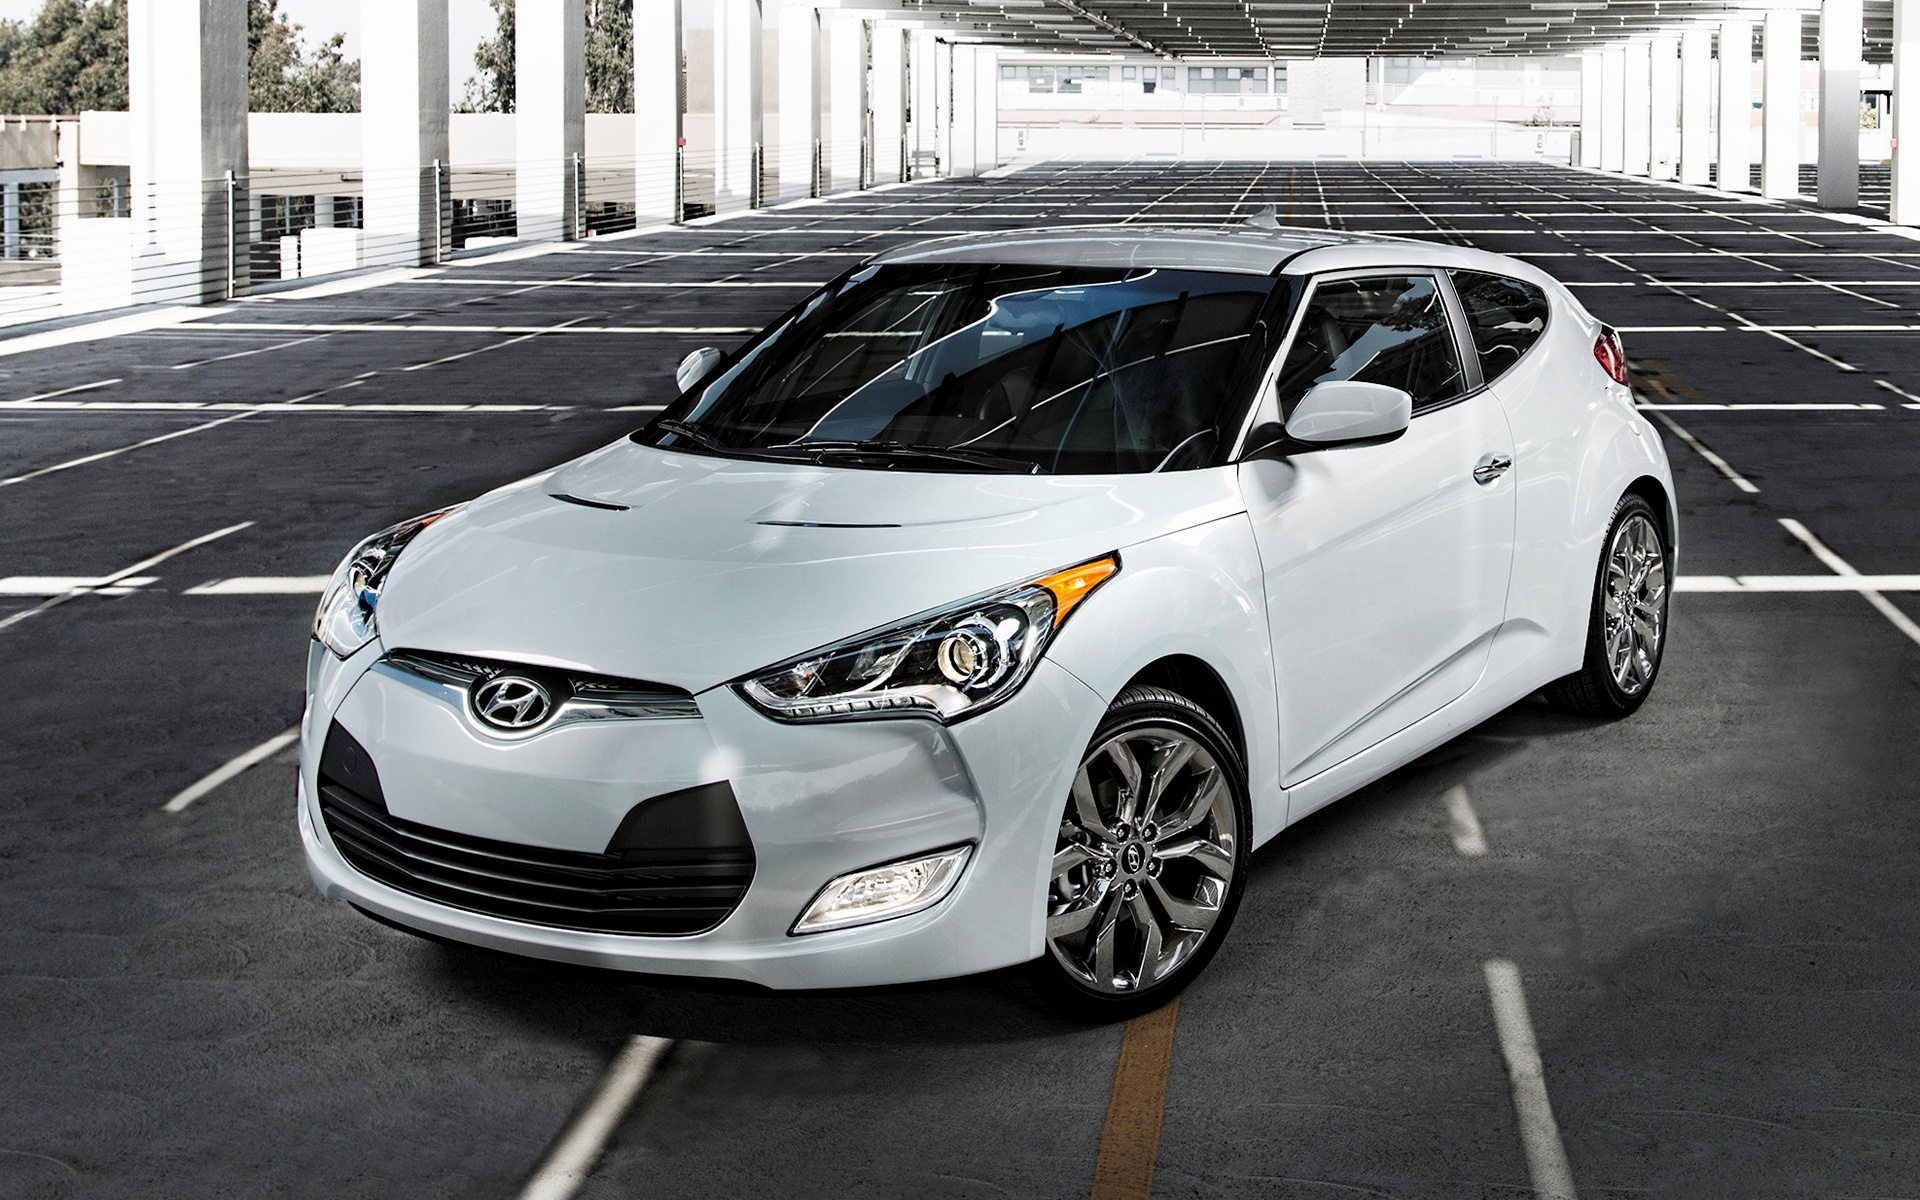 2014 Hyundai Veloster REFLEX   Wallpapers and HD Images Car Pixel 1920x1200